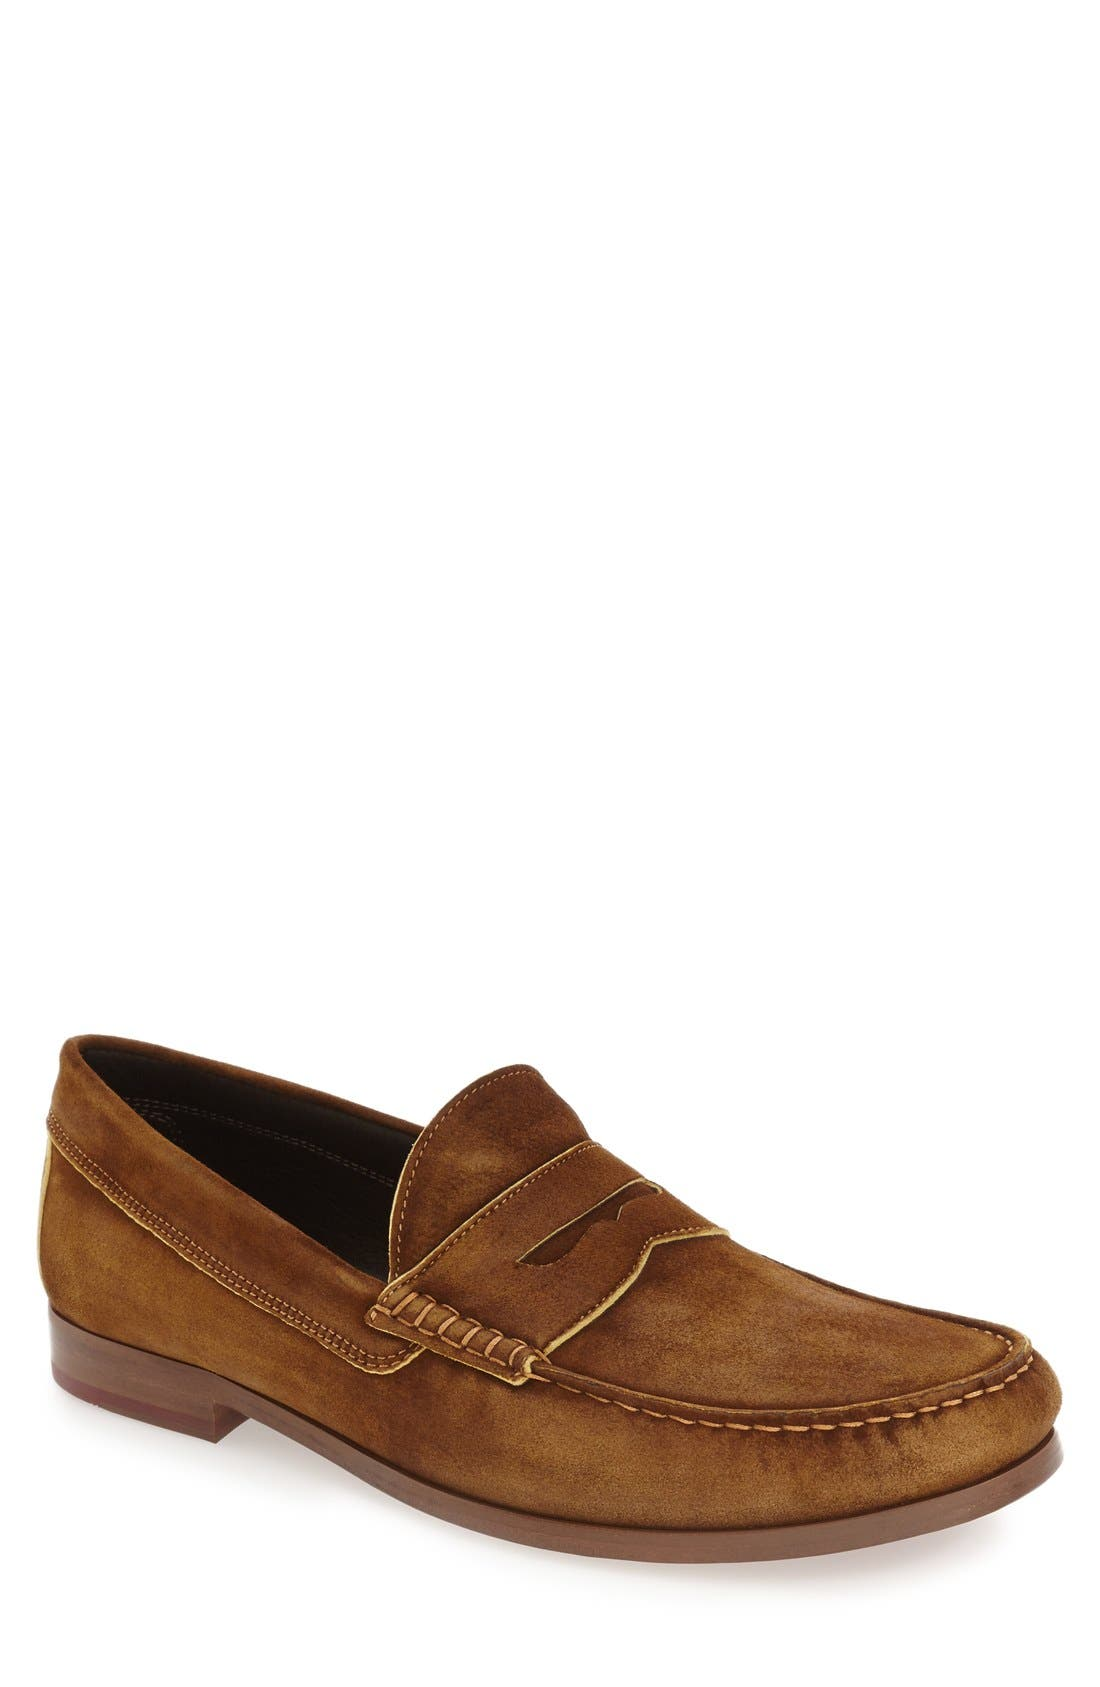 Nicola Penny Loafer,                             Main thumbnail 6, color,